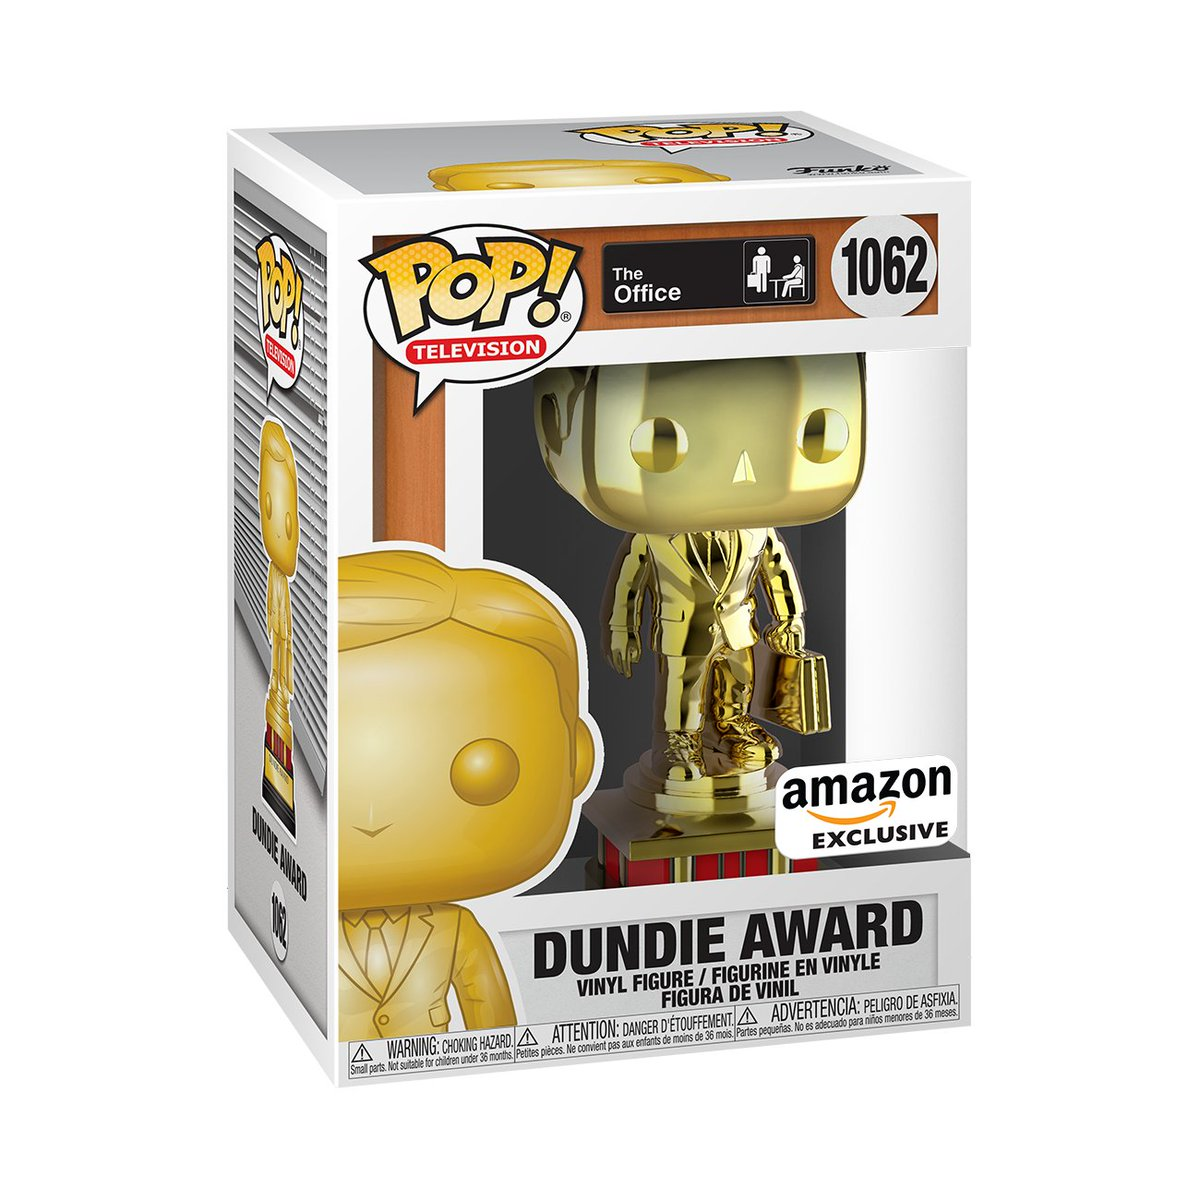 RT & follow @OriginalFunko for the chance to WIN this @amazon exclusive Dundie Award Pop!  #Funko #FunkoPop #FunkoGiveaway #giveaway #Theoffice